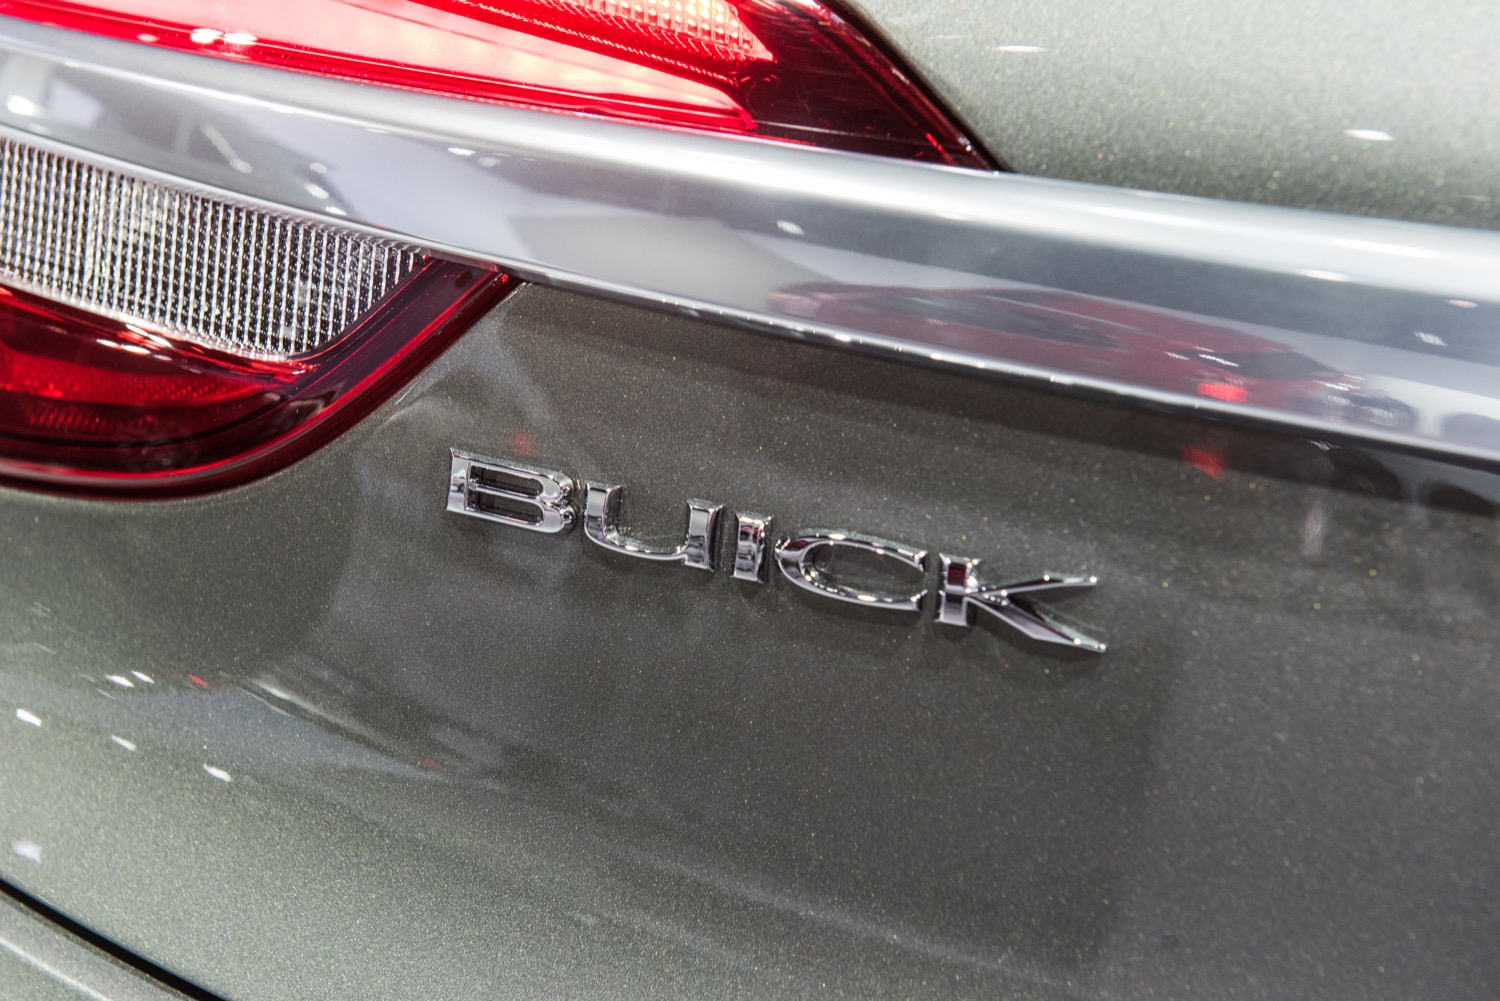 Future Buick Lacrosse Info, Specs & More | Gm Authority 2022 Buick Riviera Specs, Diesel, Lights